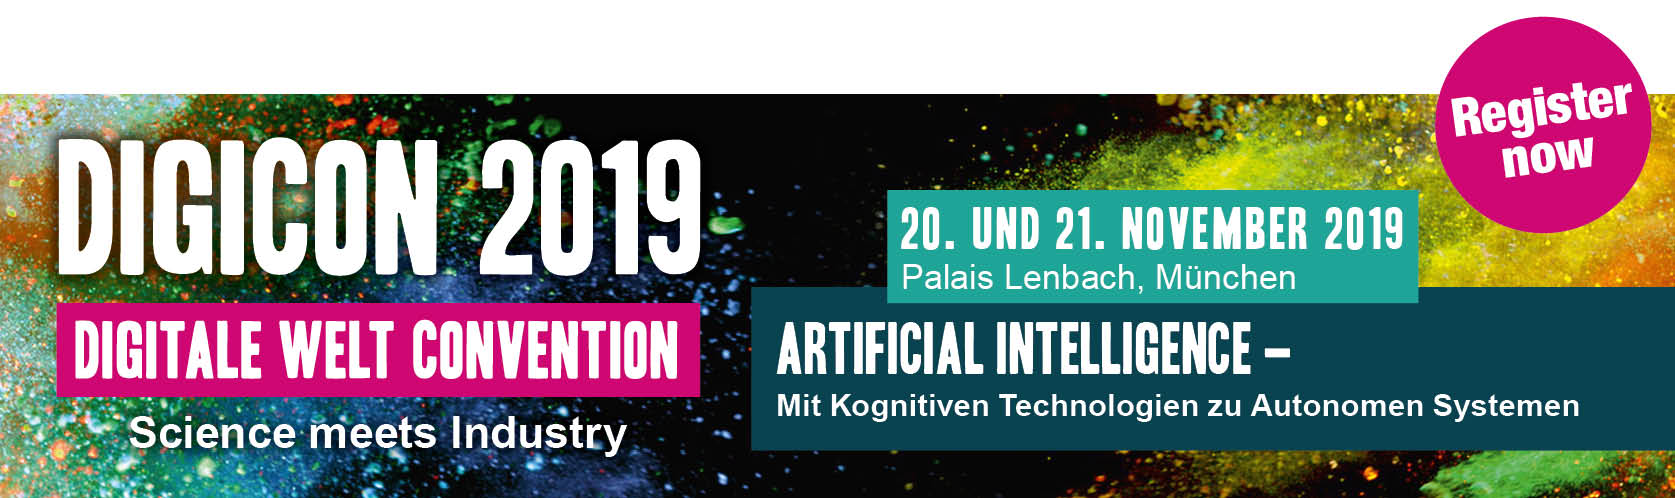 Digicon 2019 - Artificial Intelligence - With Cognitive Technologies to Autonomous Systems